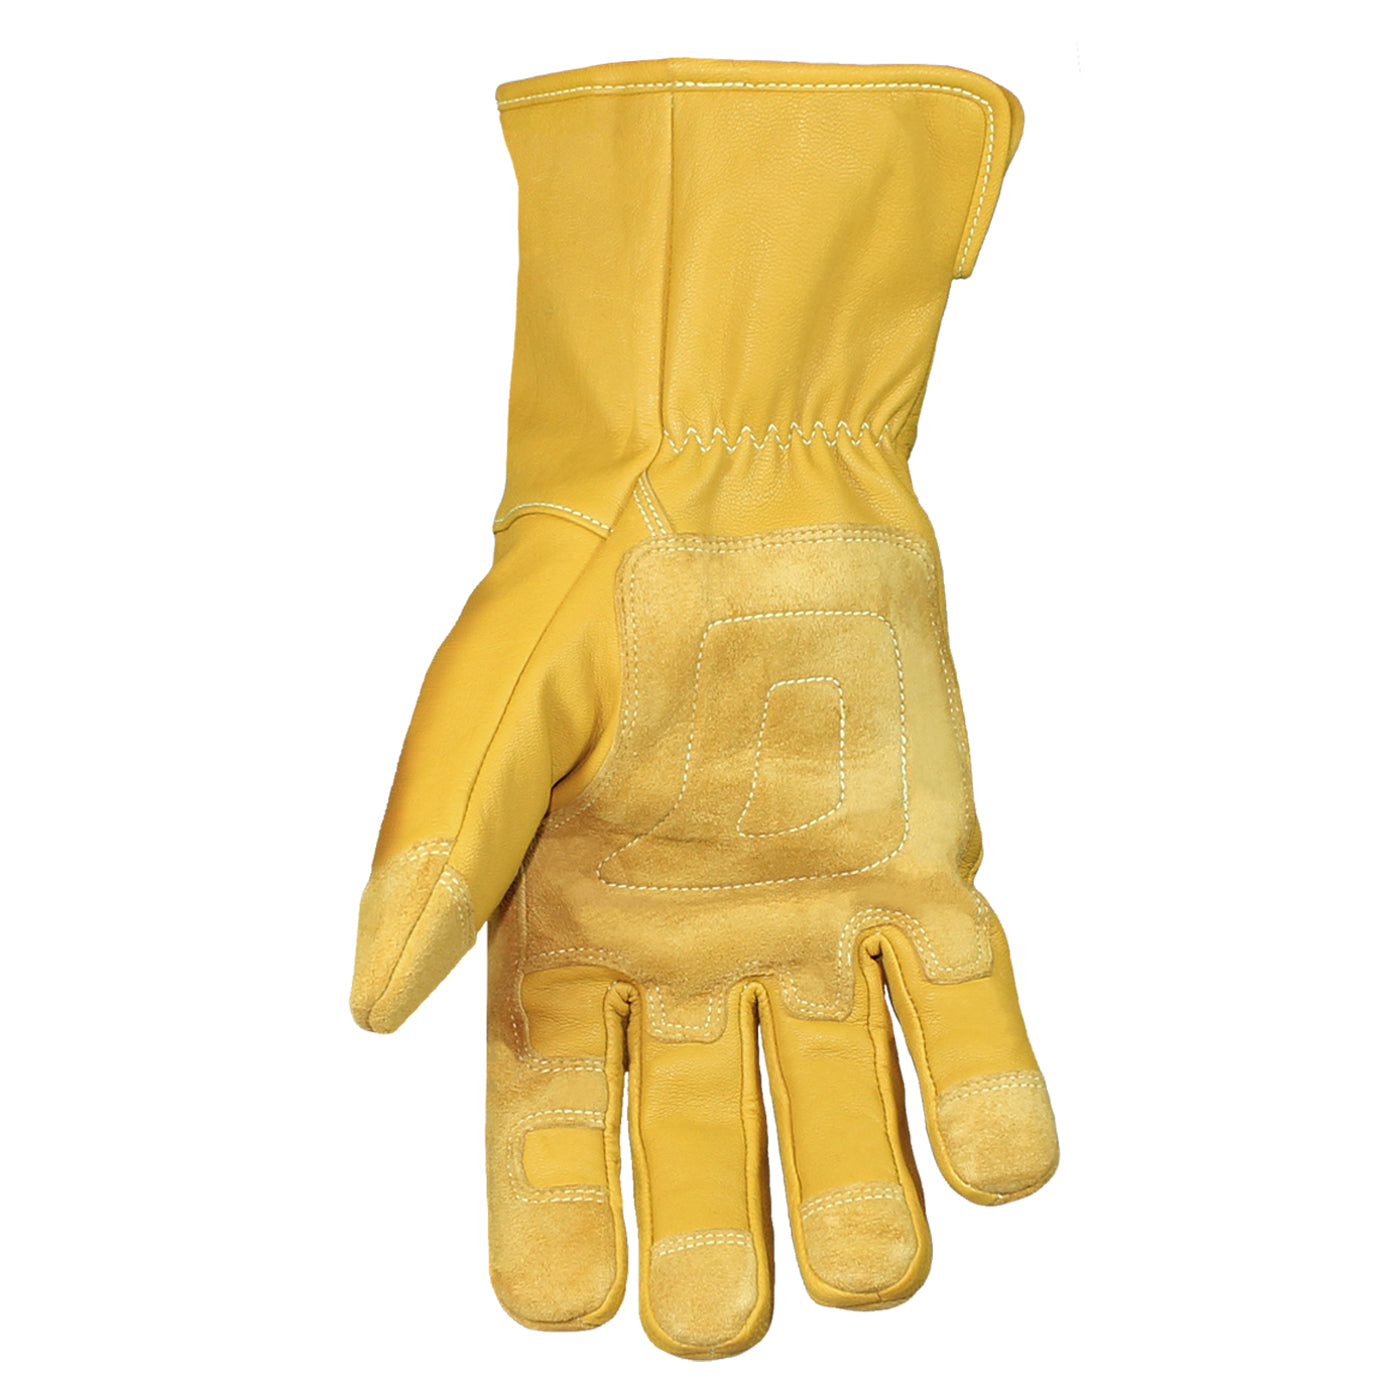 11-3285-60 Youngstown FR Waterproof Leather Utility Glove - Main image